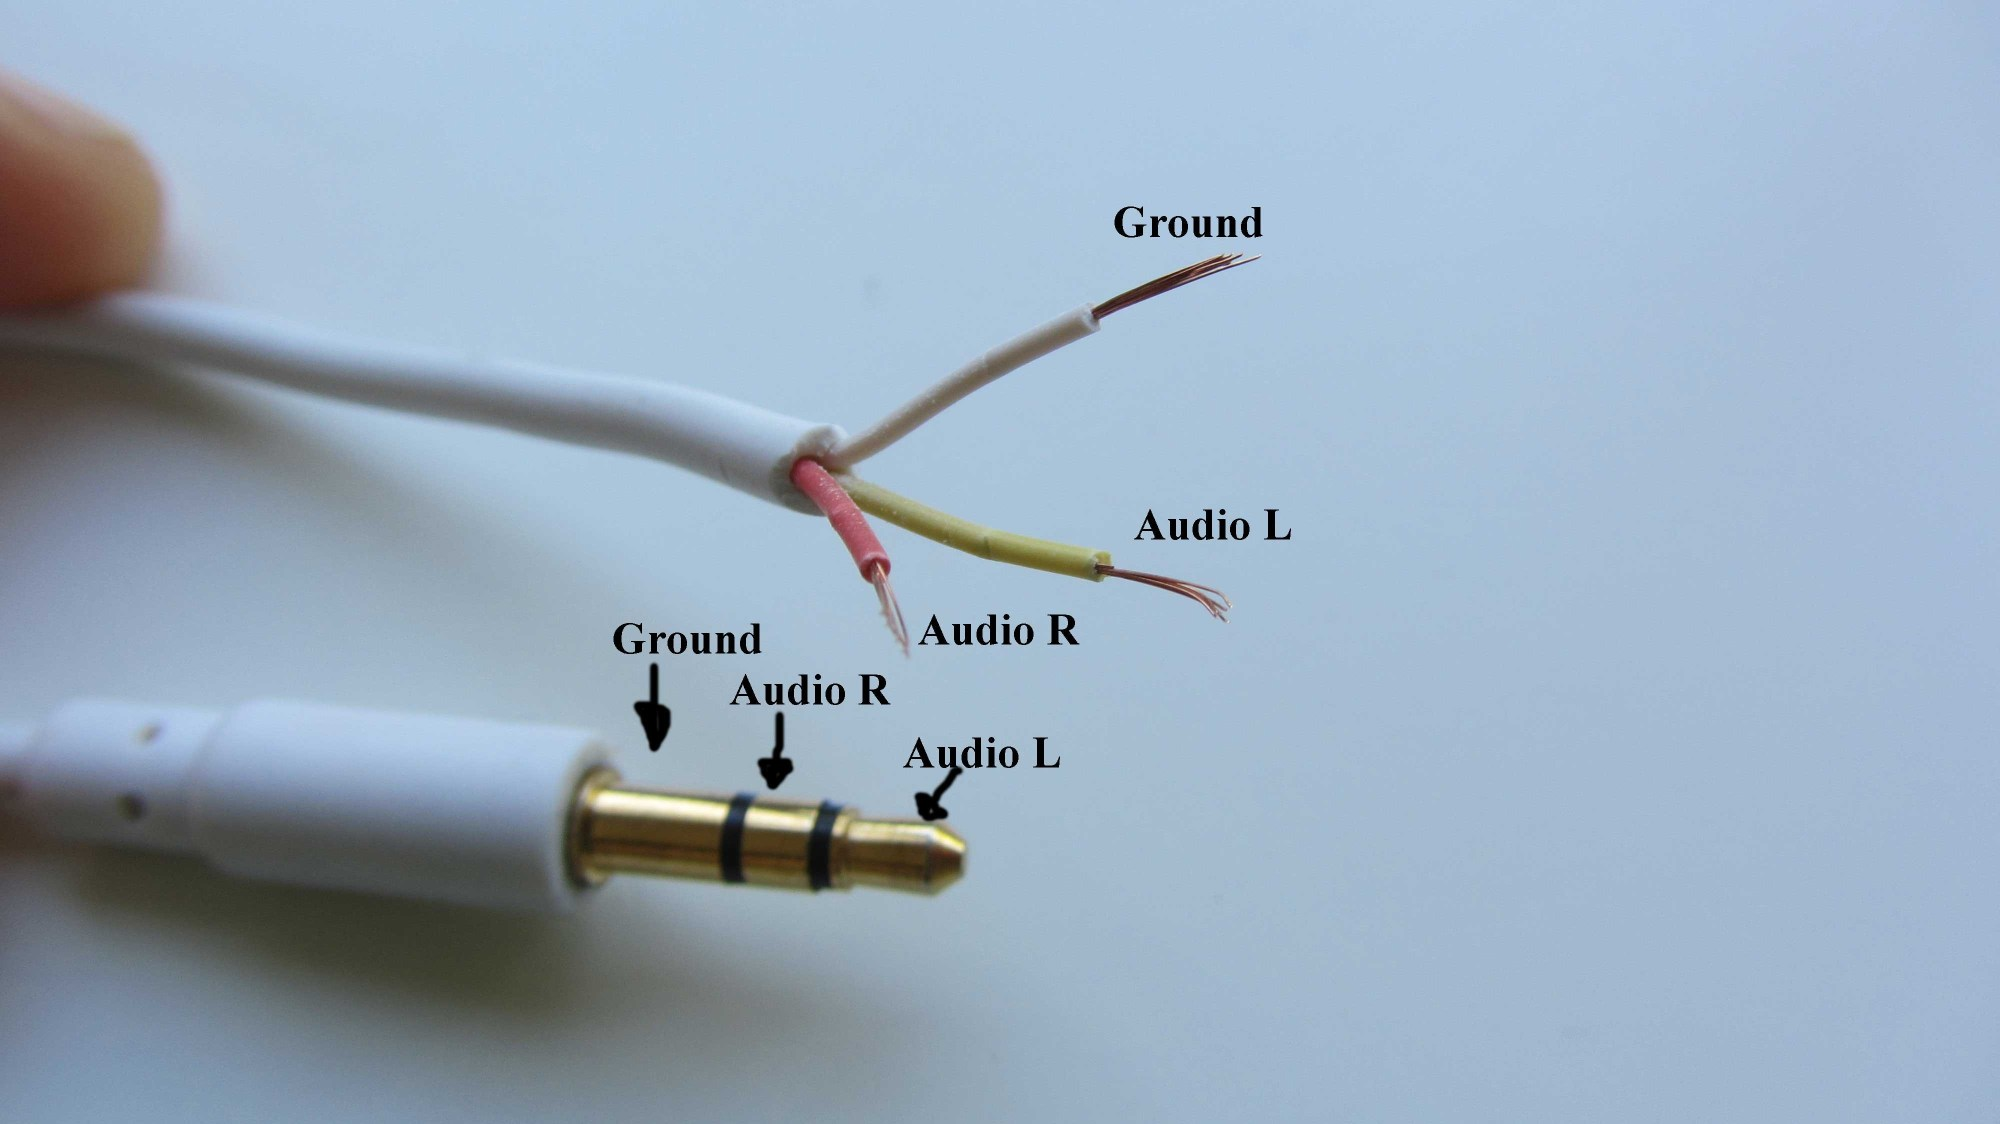 hight resolution of 3 5mm audio cable wiring diagram wiring diagram toolbox3 4p 5mm audio plug wiring wiring diagram